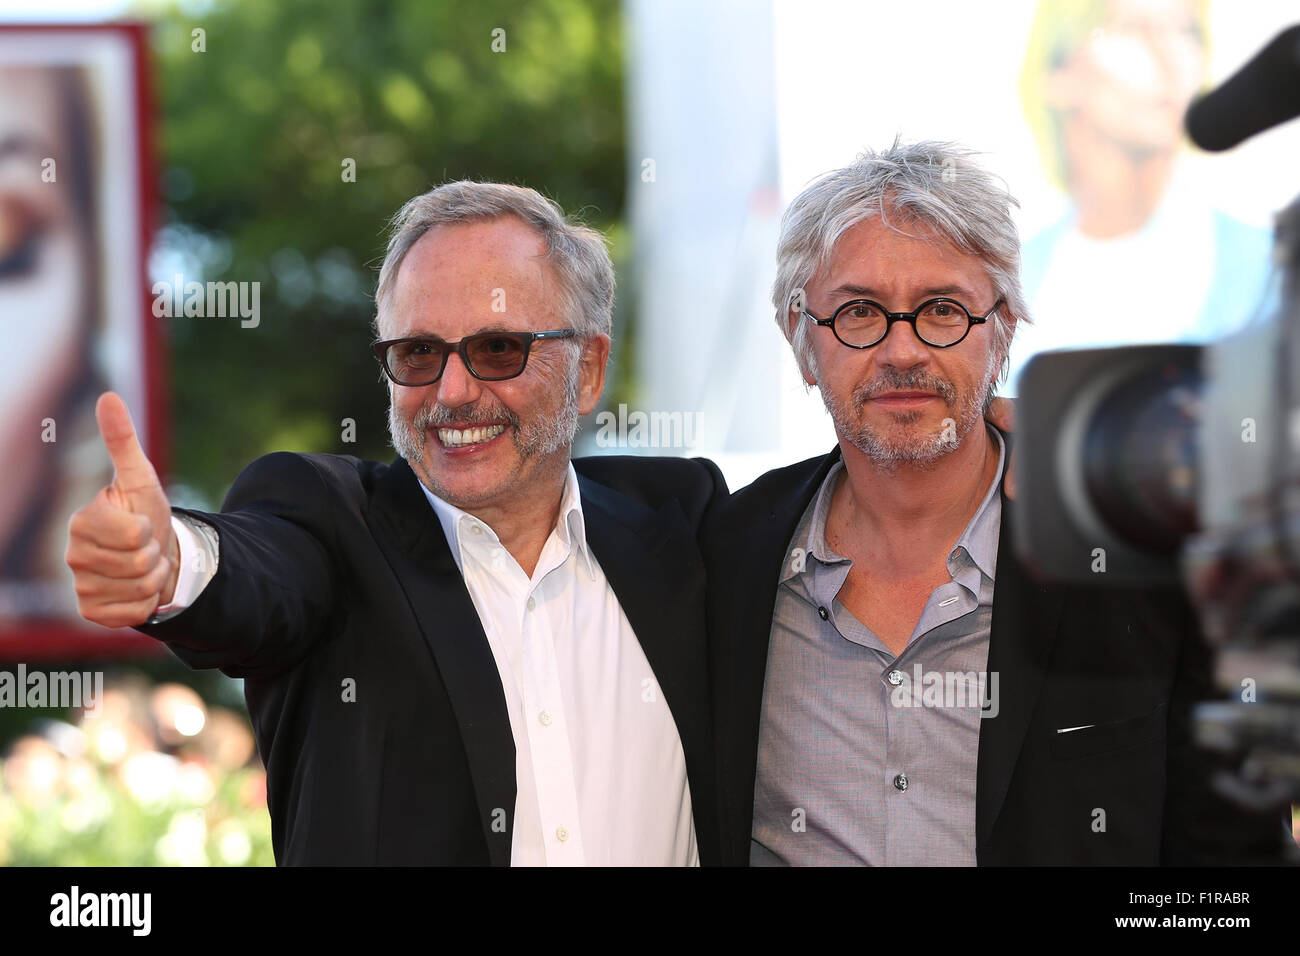 """Actor Fabrice Luchini (L) and director Christian Vincent attend the red  carpet event for the movie """"L'Hermine"""" at the 72nd Venice Film Festival in  Venice, ..."""